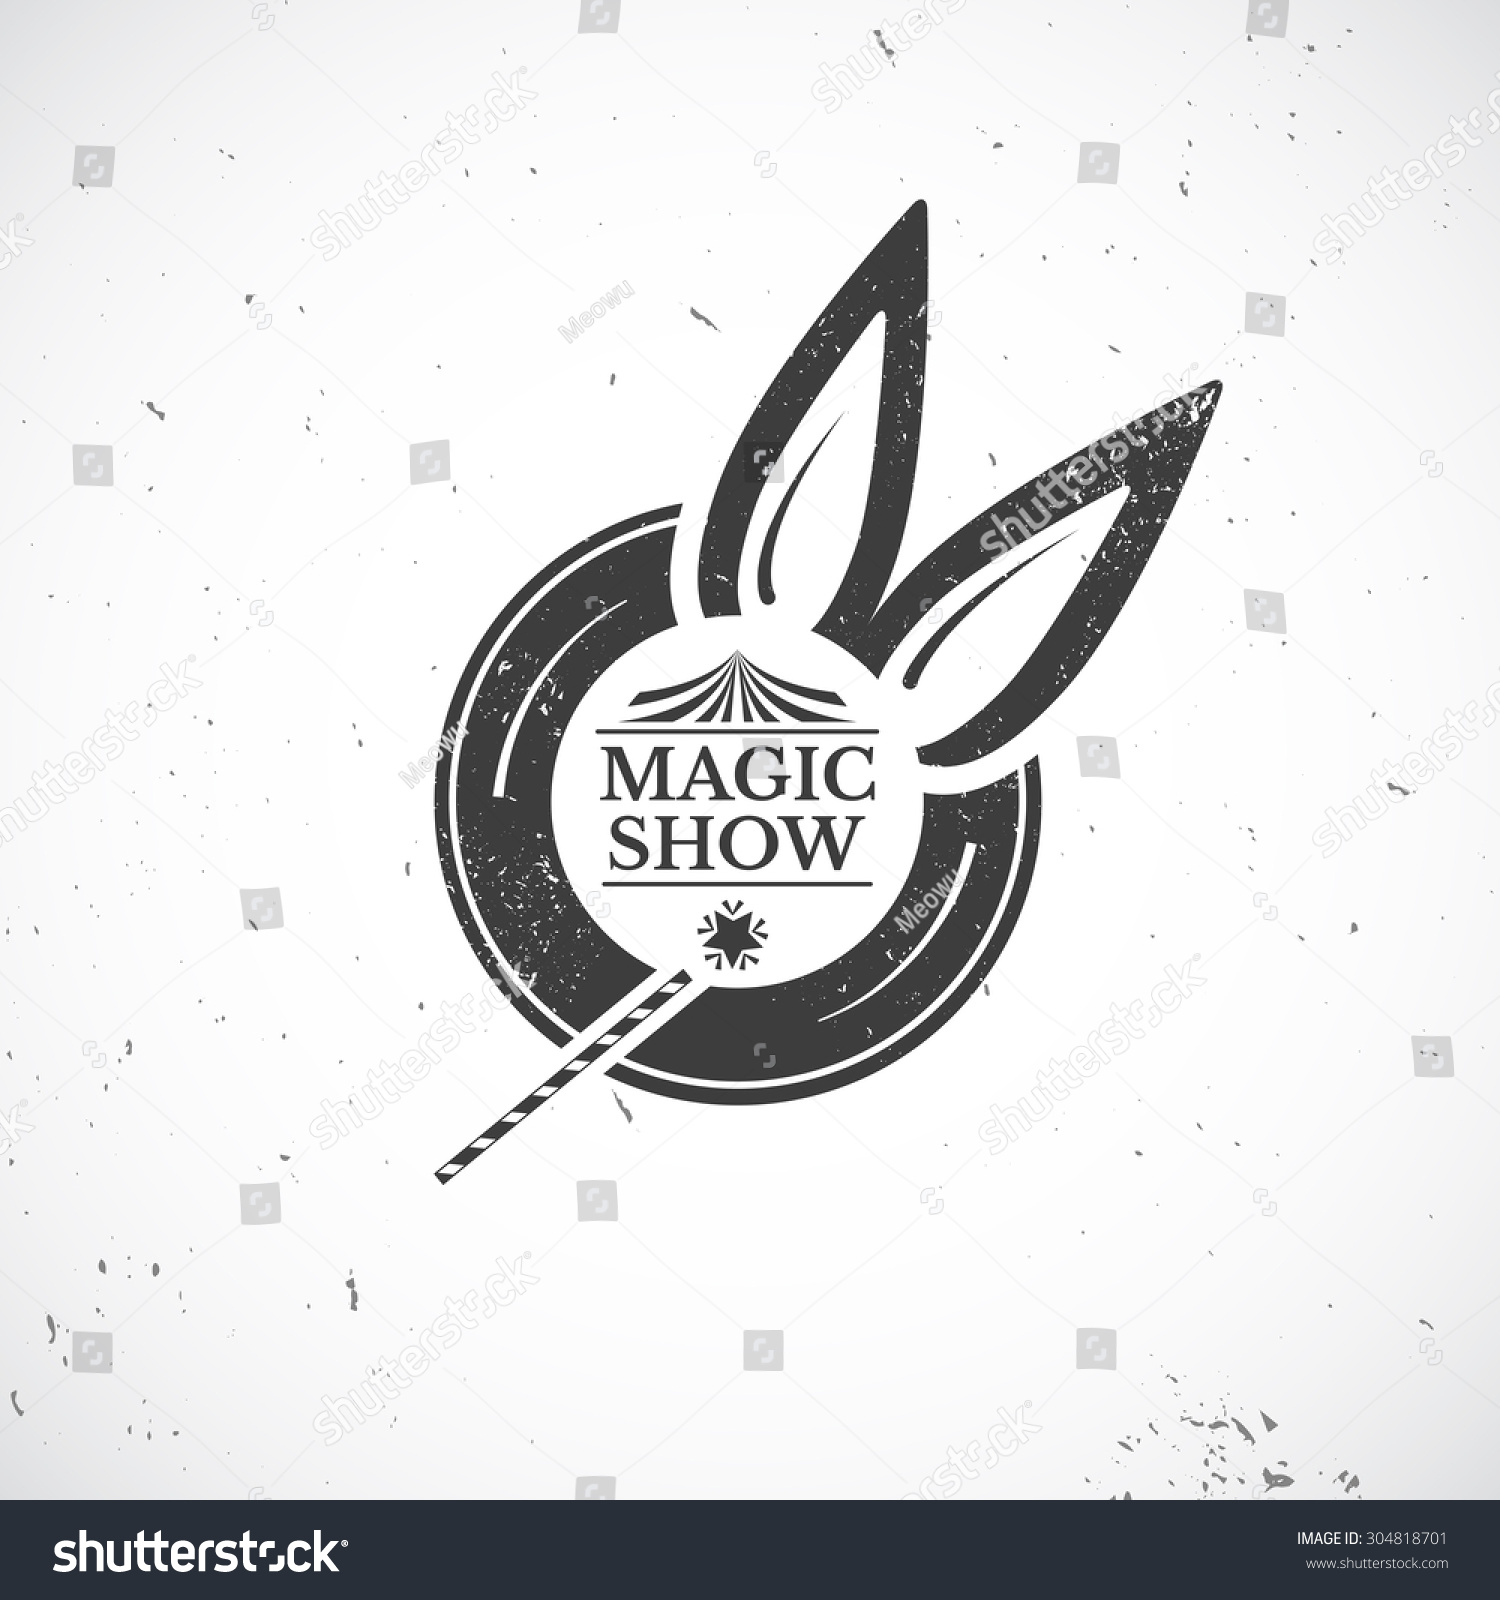 Circus Vintage Badge Old Black Hat Stock Vector (Royalty Free ...